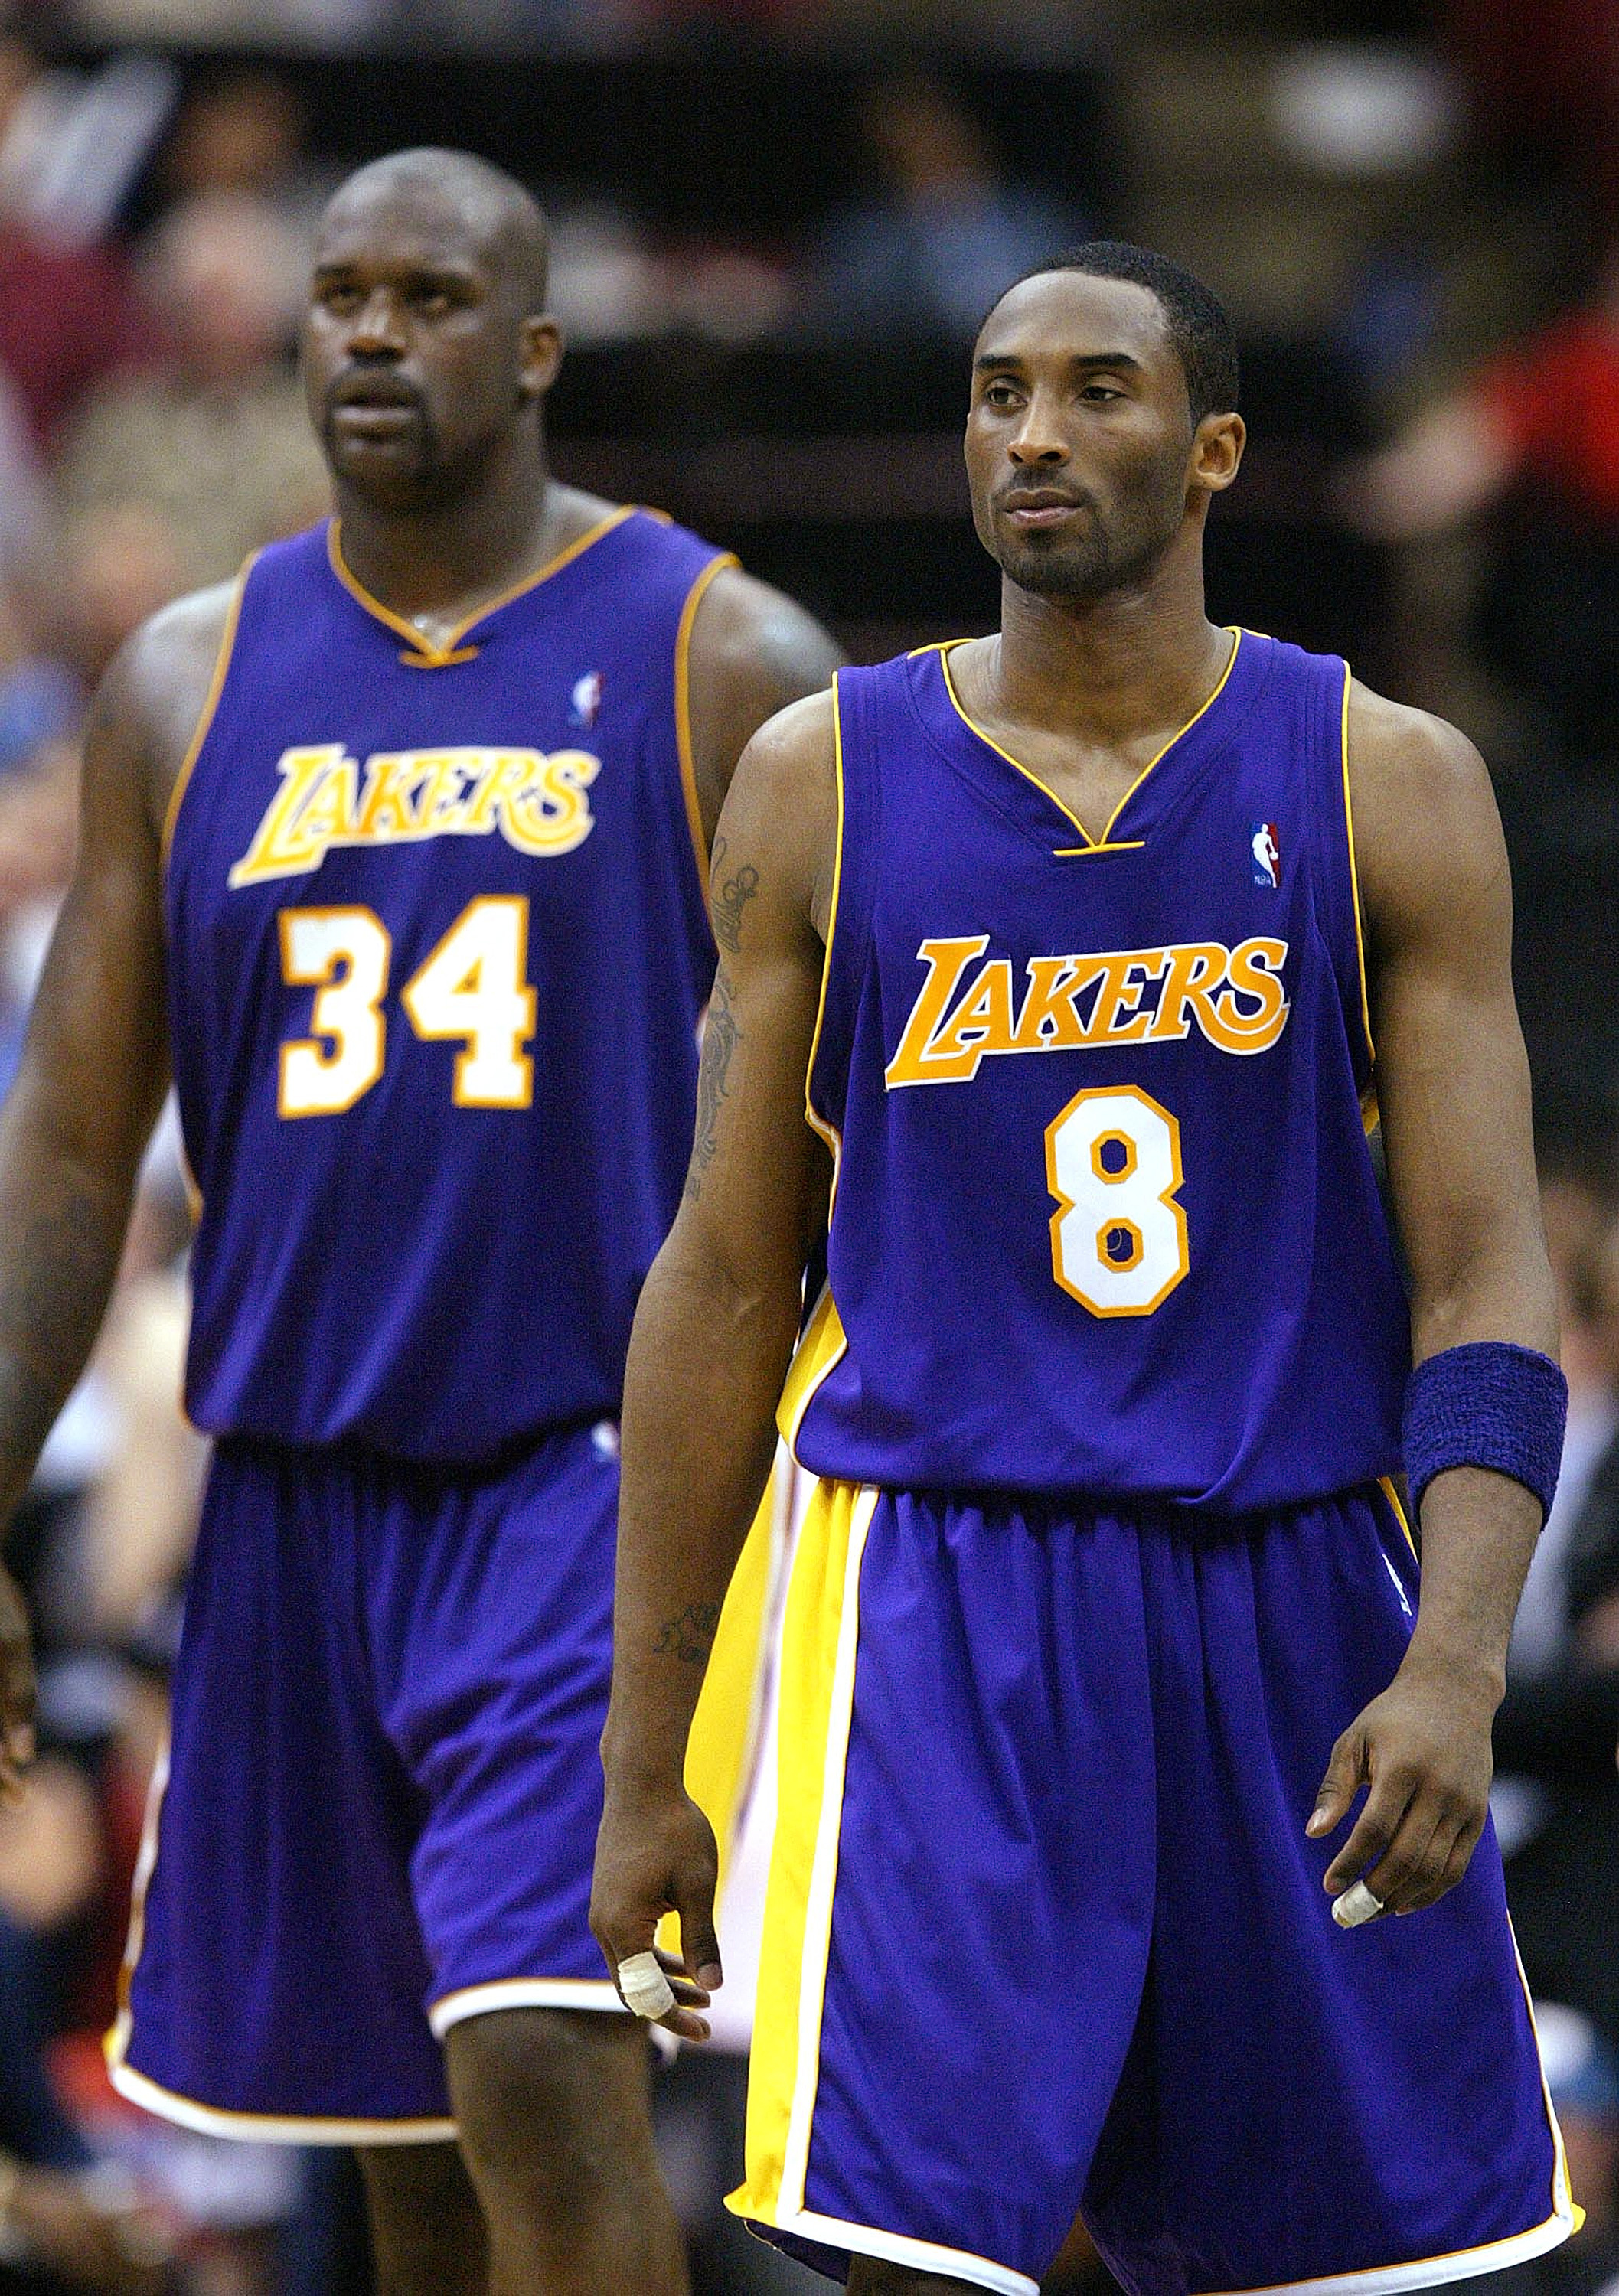 MINNEAPOLIS - MAY 29:  Kobe Bryant #8 and Shaquille O'Neal #34 of the Los Angeles Lakers walk upcourt in the fourth quarter of Game five of the Western Conference Finals against the Minnesota Timberwolves during the 2004 NBA Playoffs on May 29, 2004 at Ta